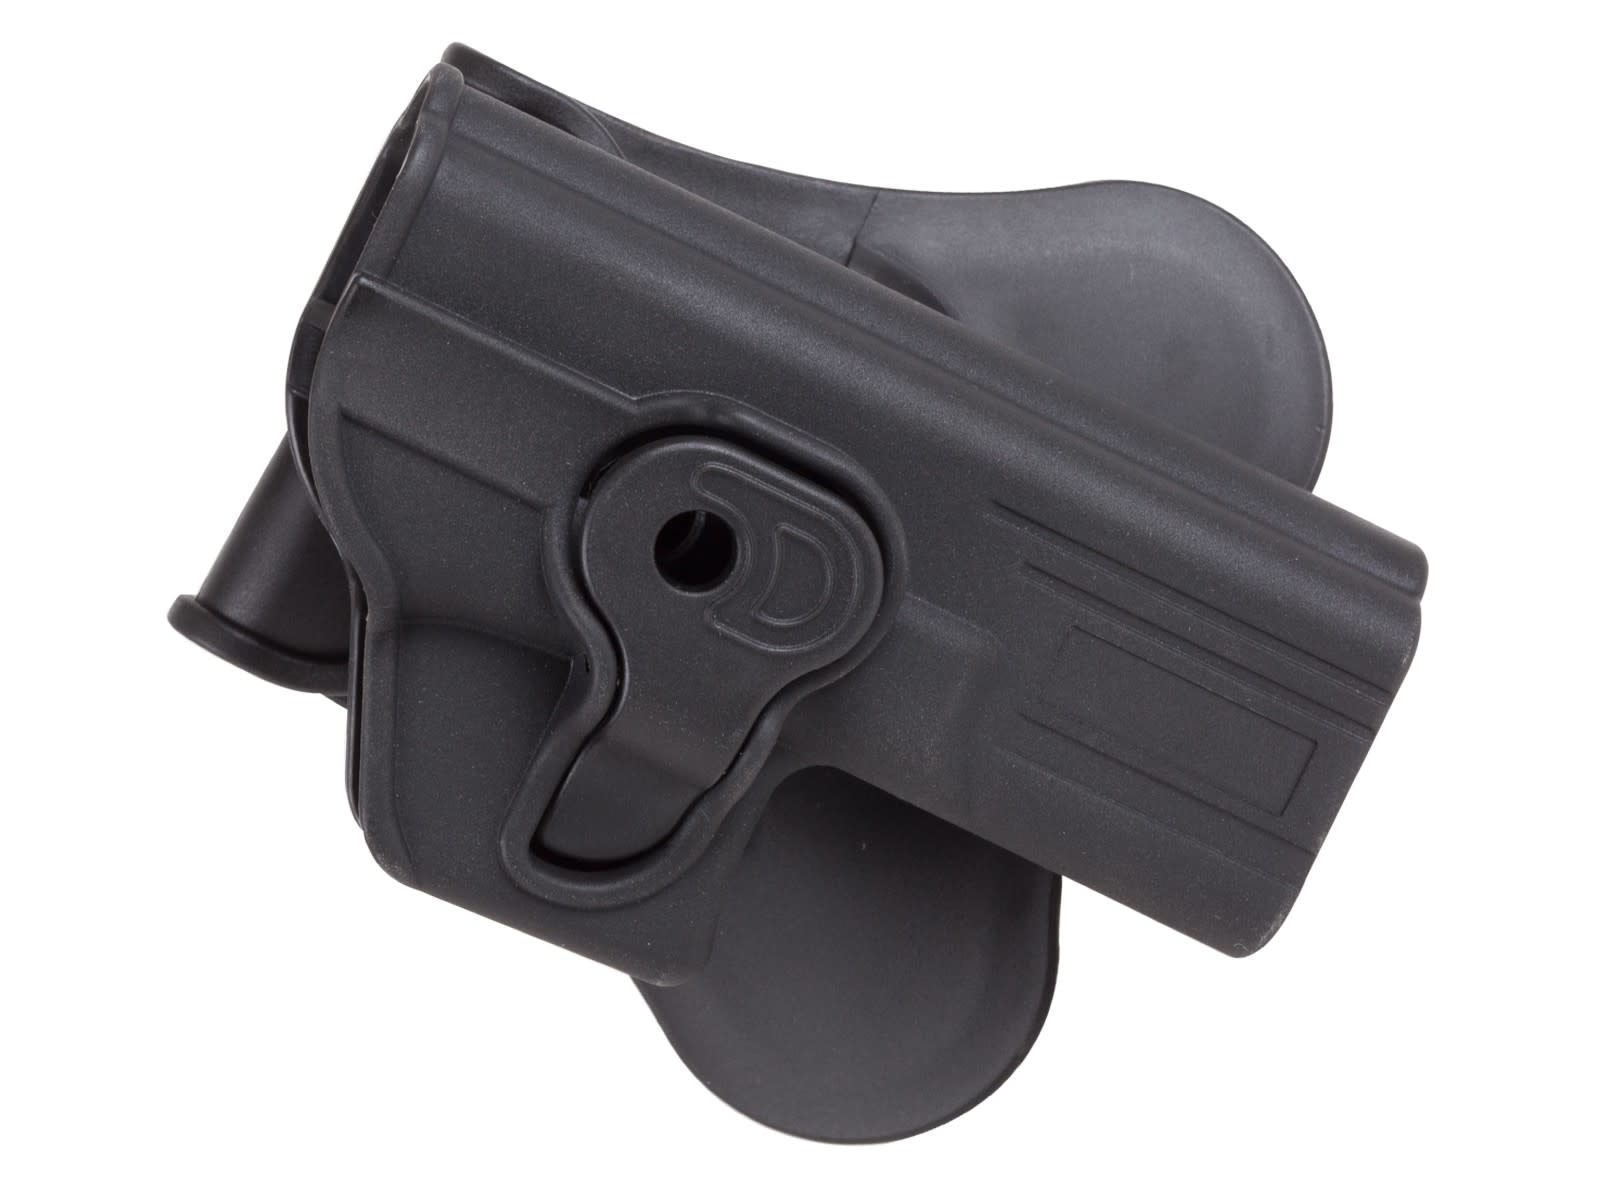 Strike Systems Paddle Polymer Holster For G17 G19 23